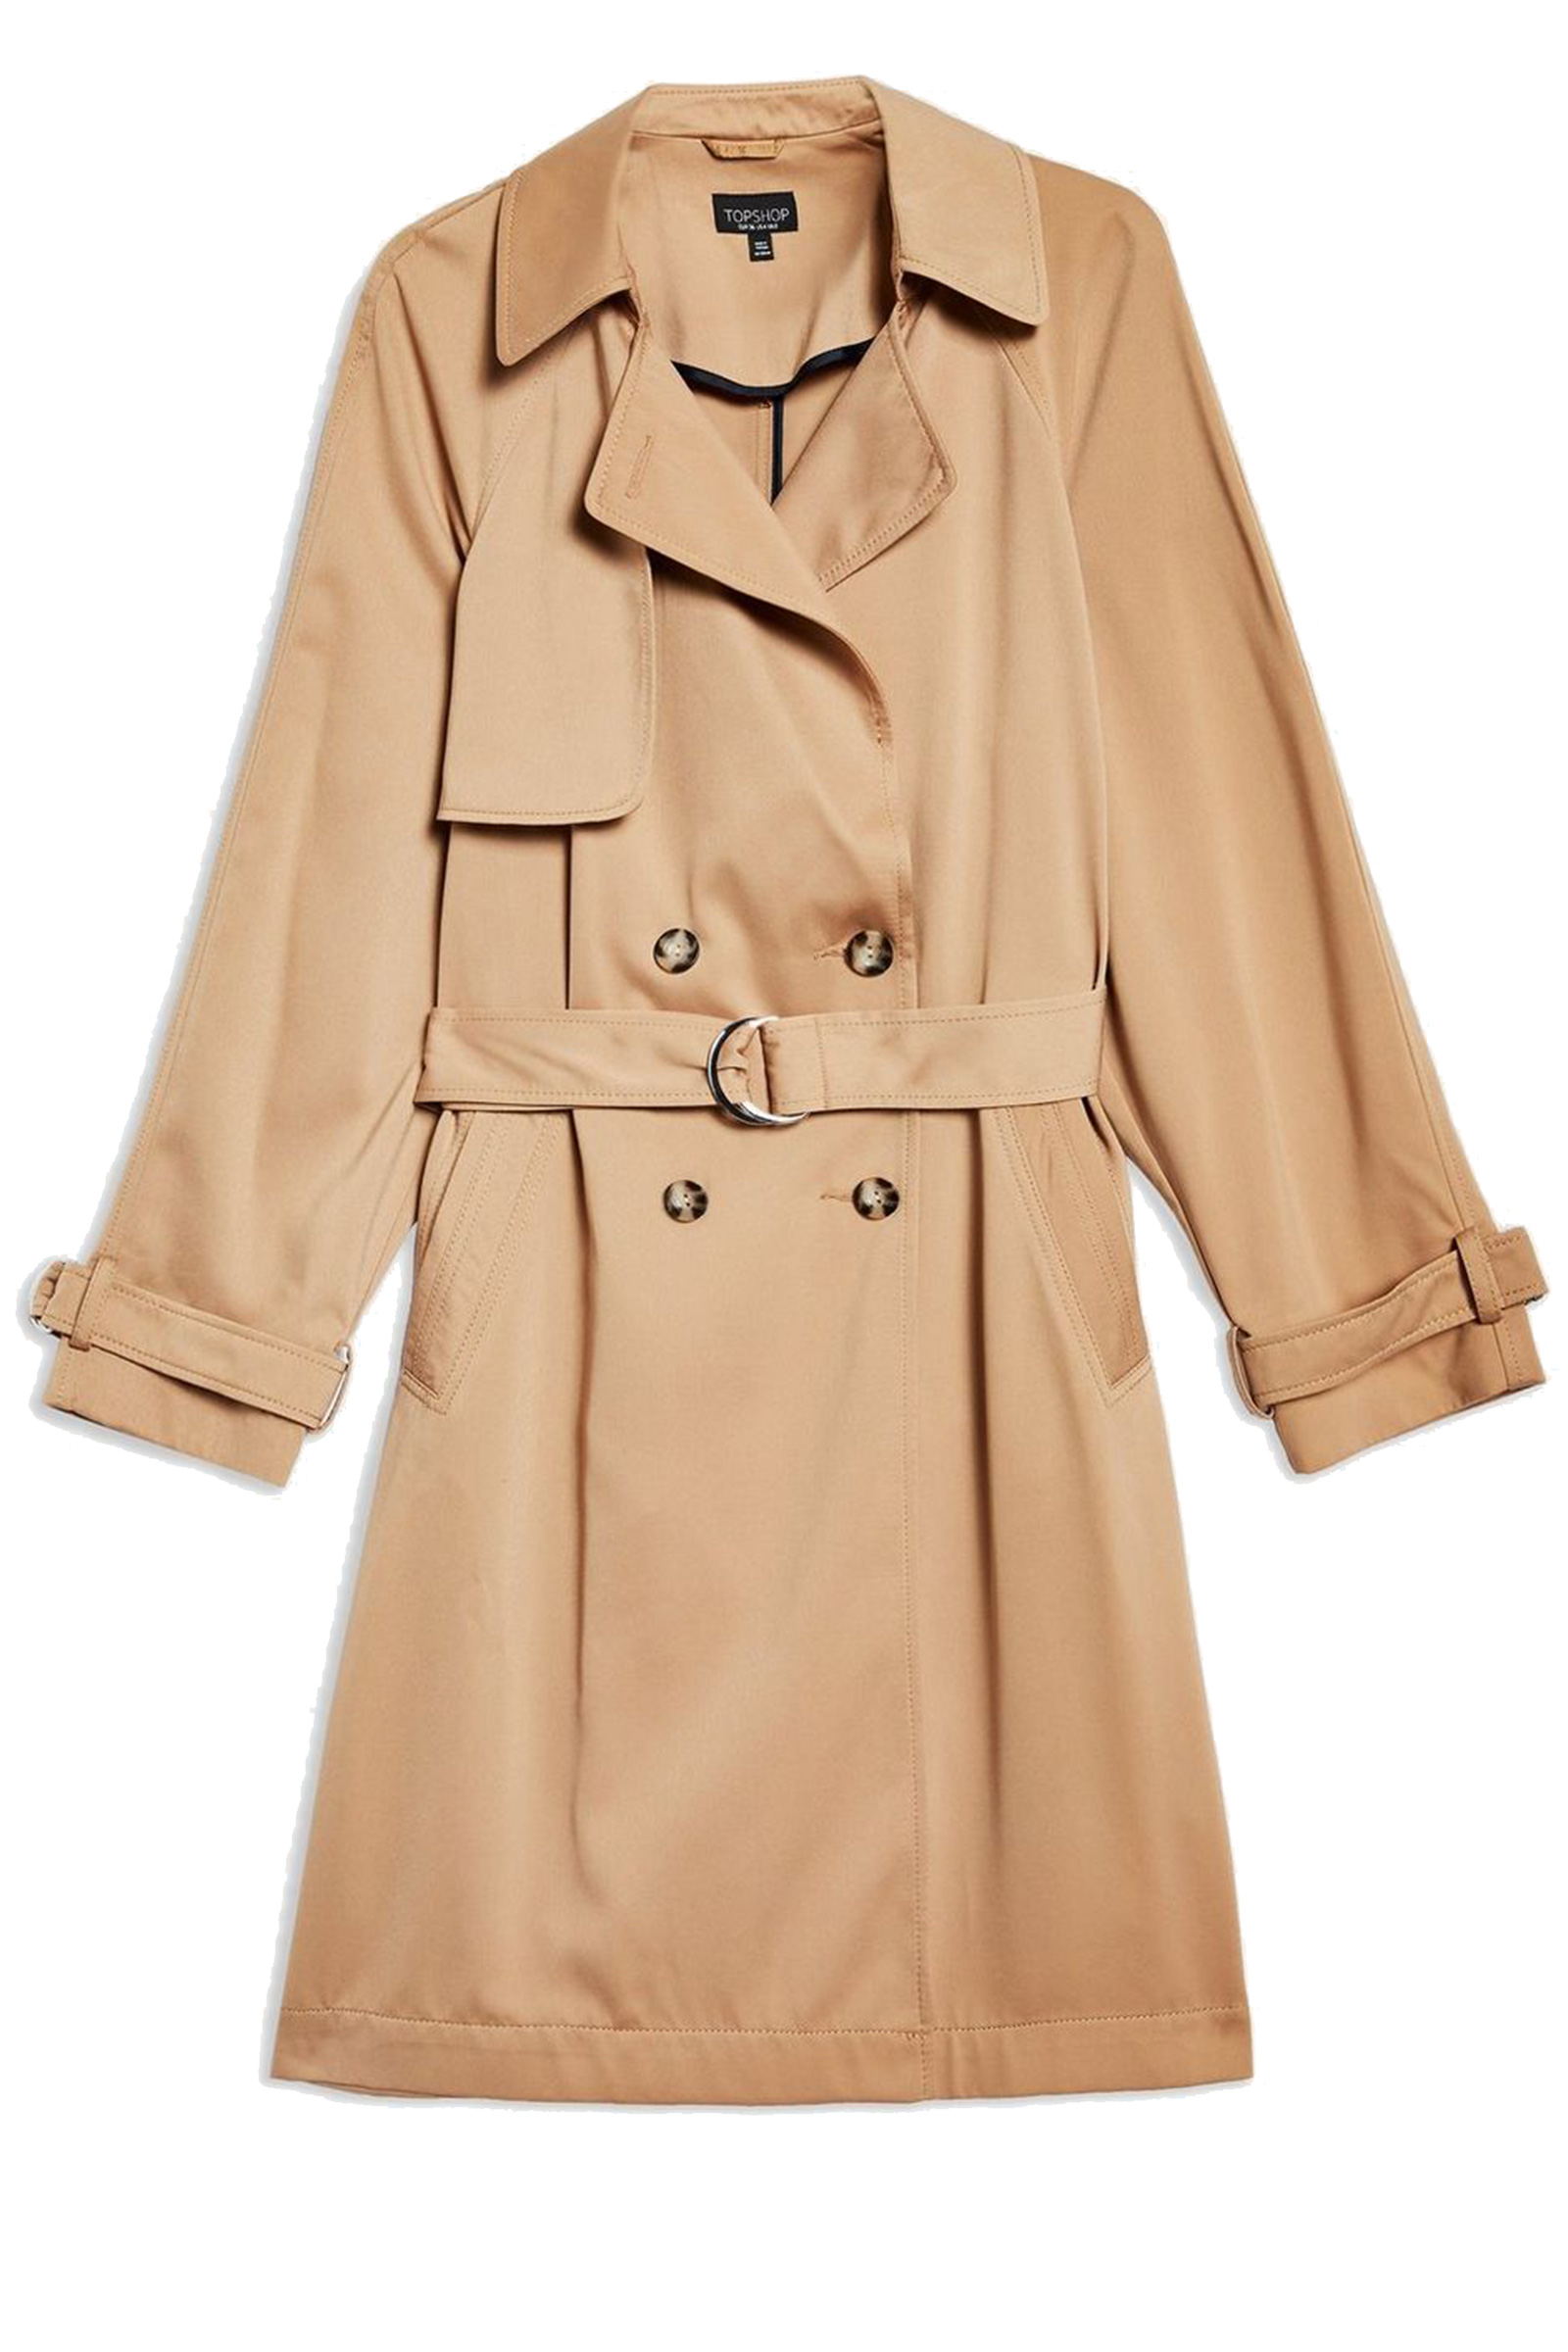 click to buy topshop trench coat